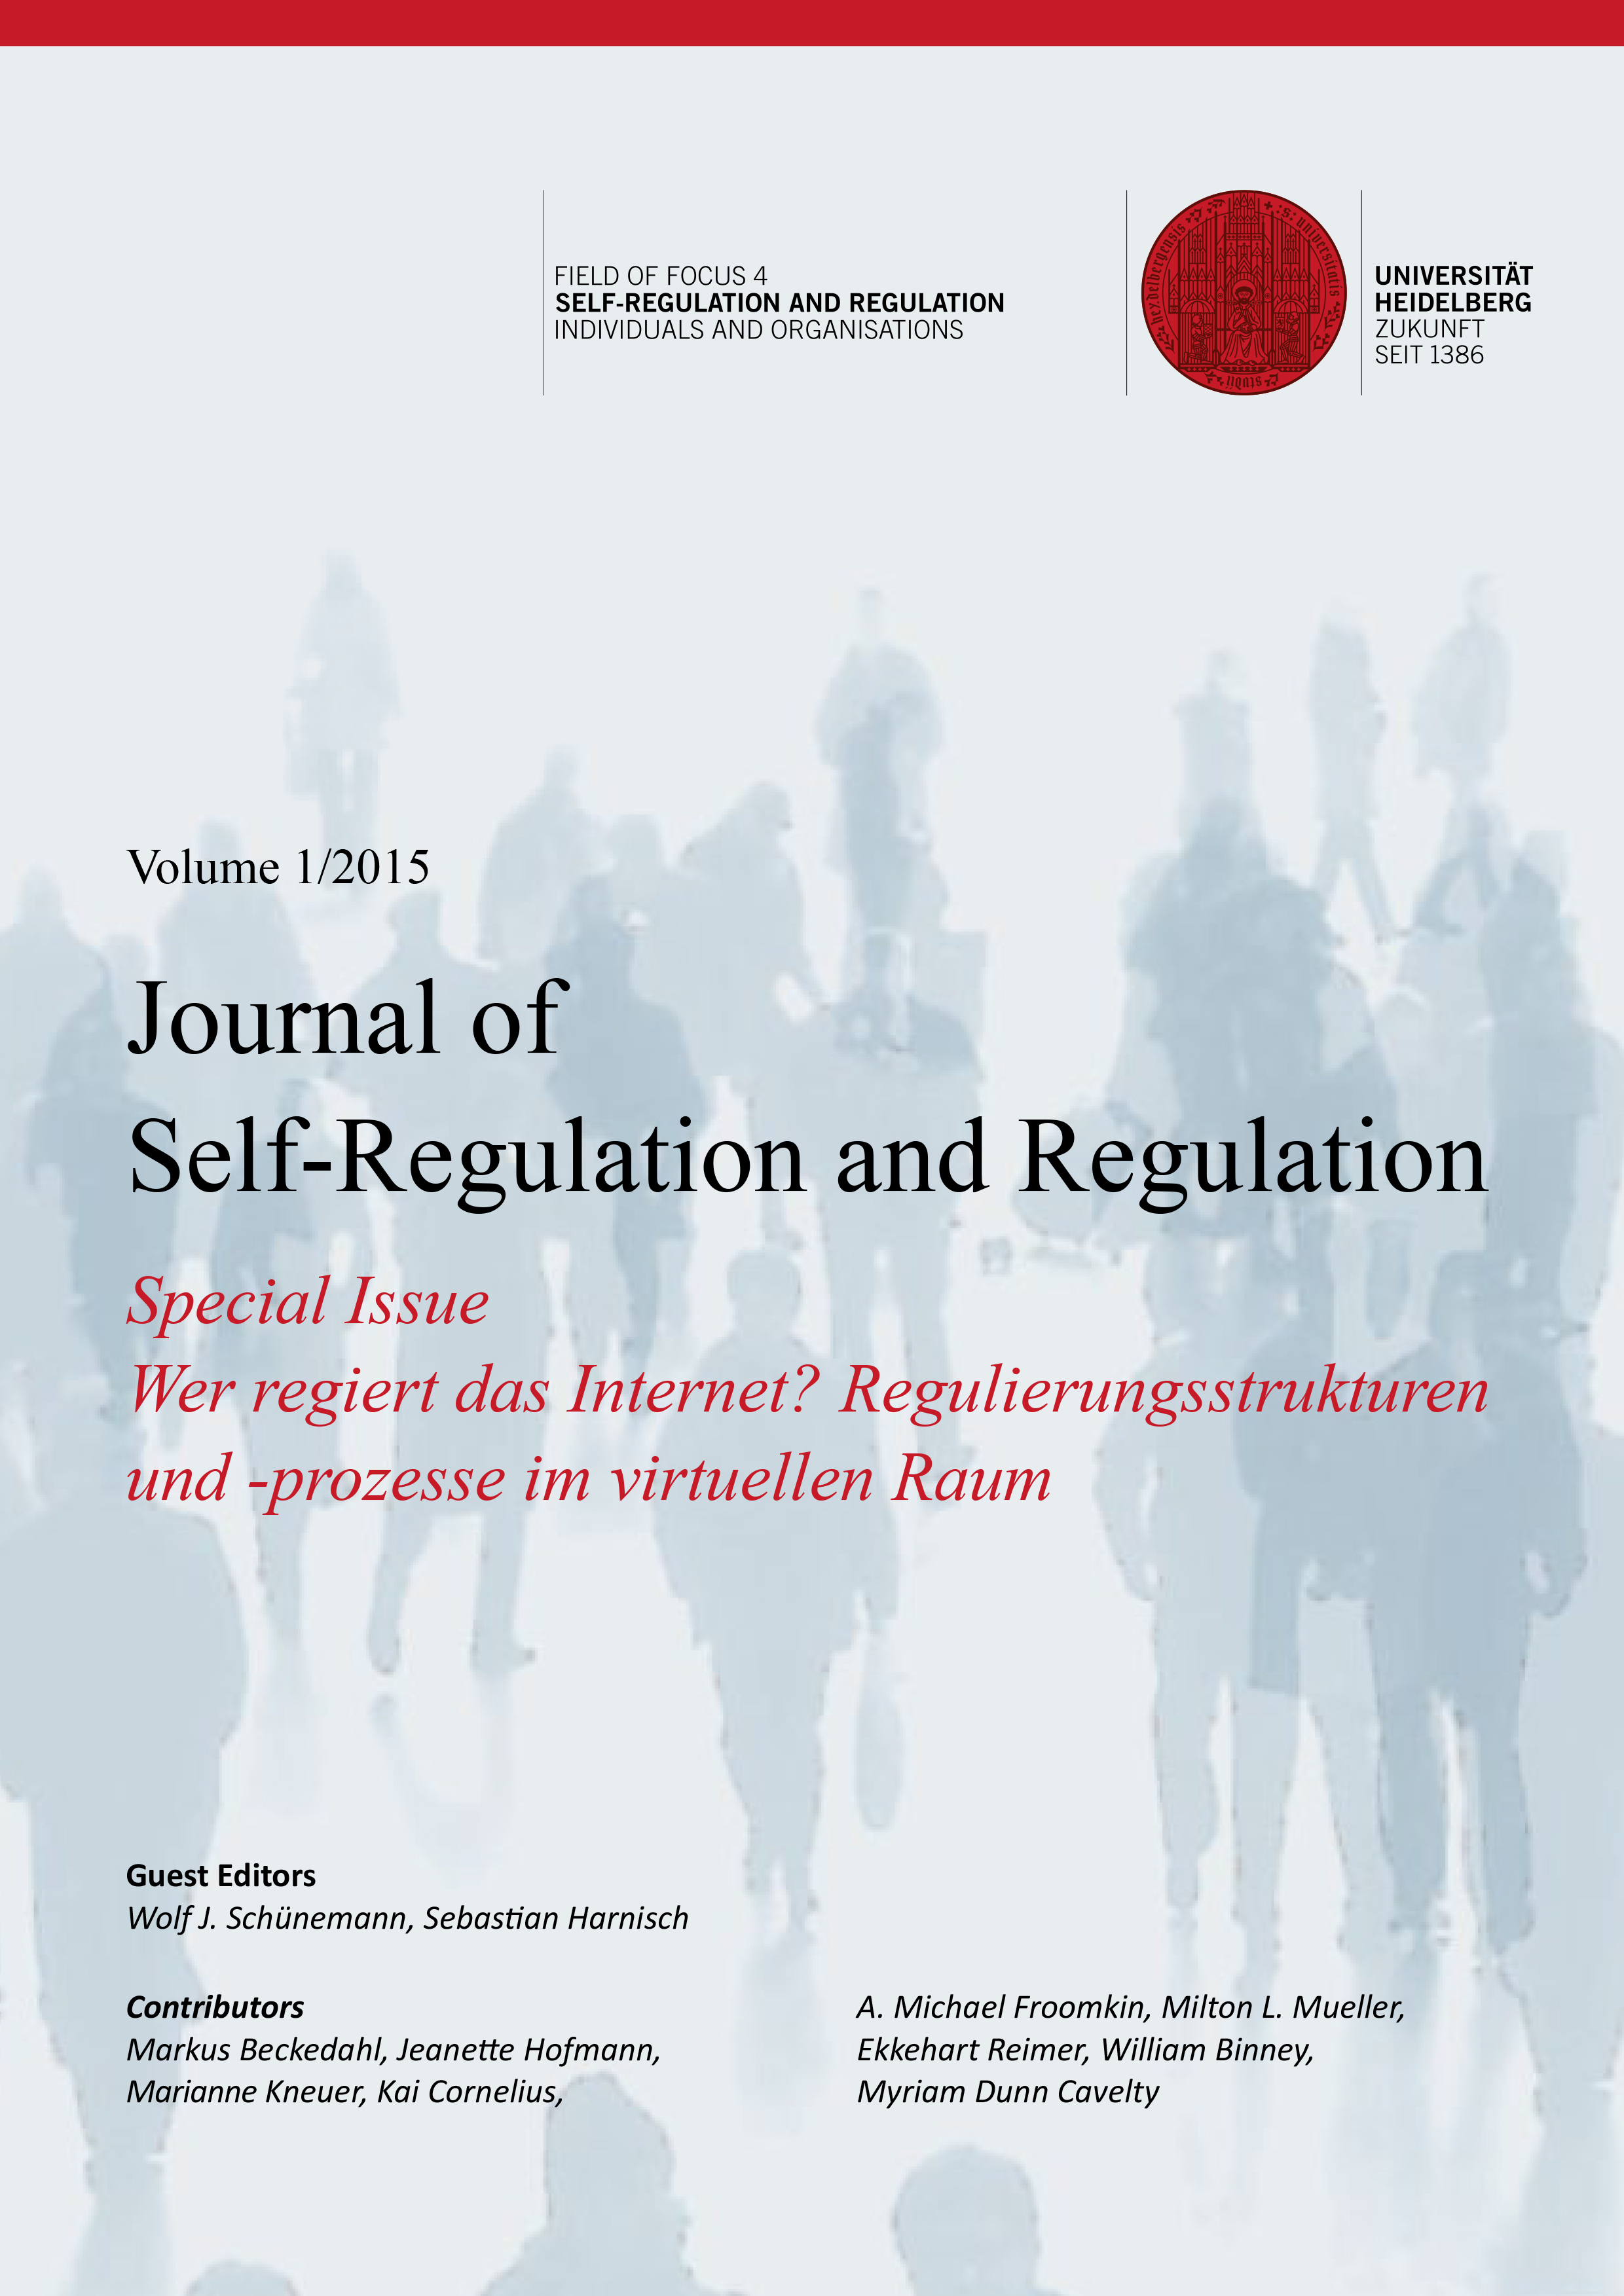 self regulation of media This study, written by andrew puddephatt, focuses on different angles of self-regulation applied to the media sector it summarizes the intersections of the theme with the practice of.